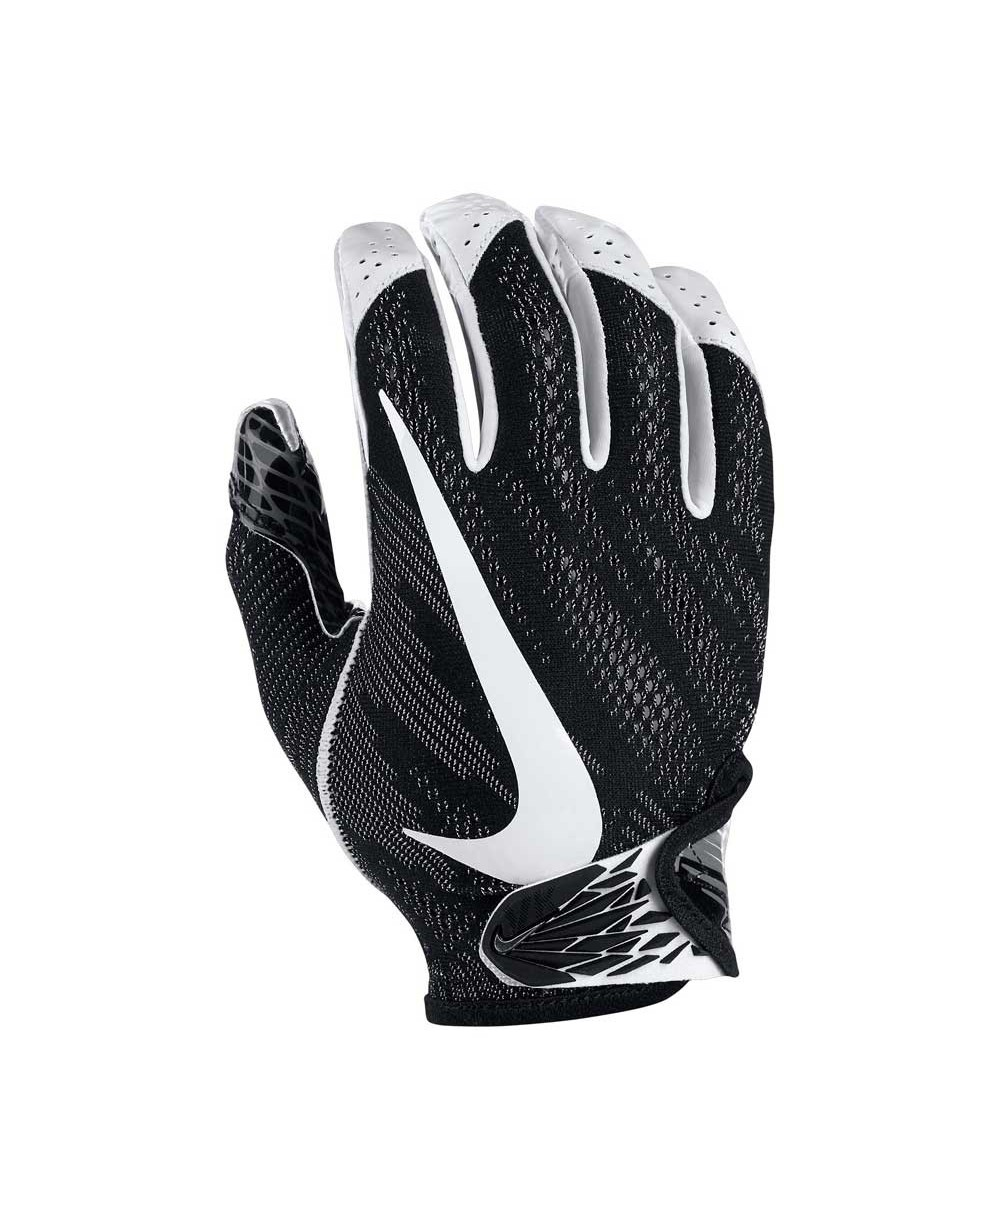 Nike Vapor Knit Men's American Football Gloves Black